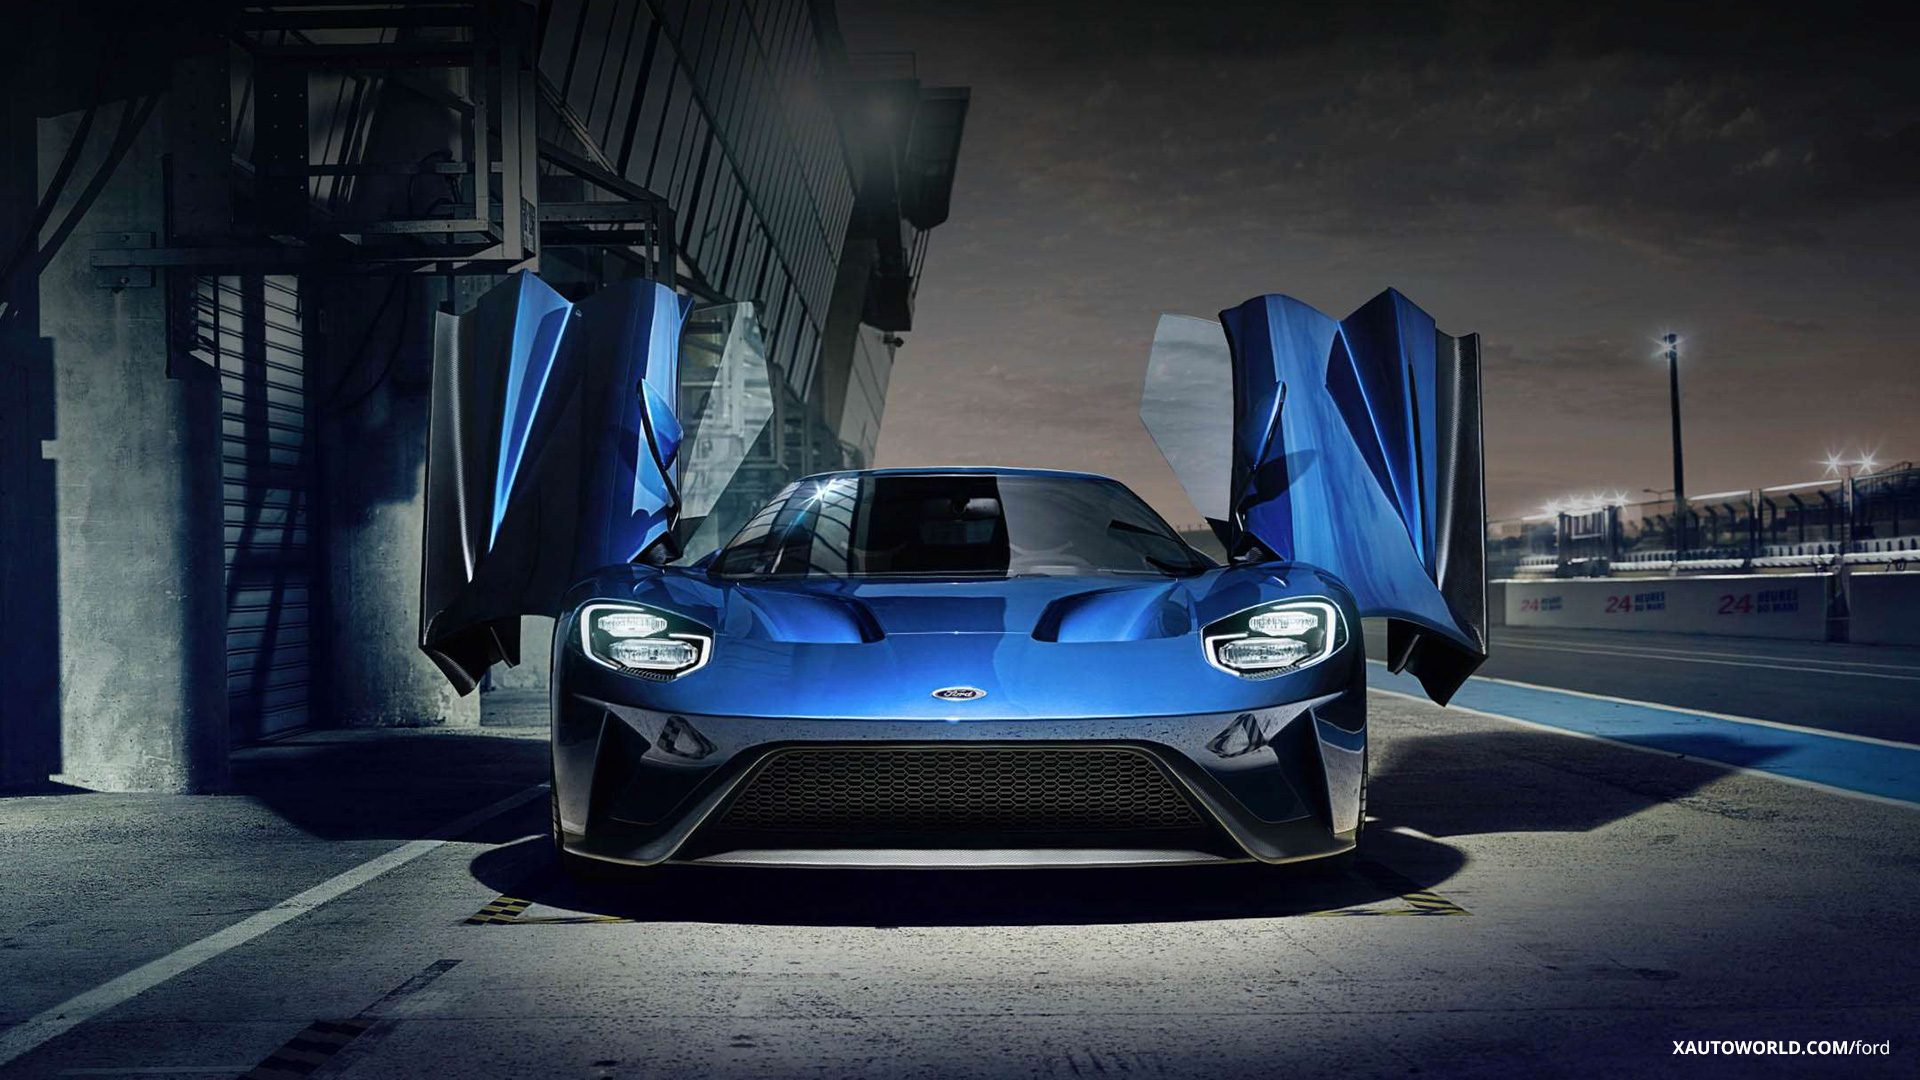 & 2017 Ford GT - A Sensation And A Future Investment